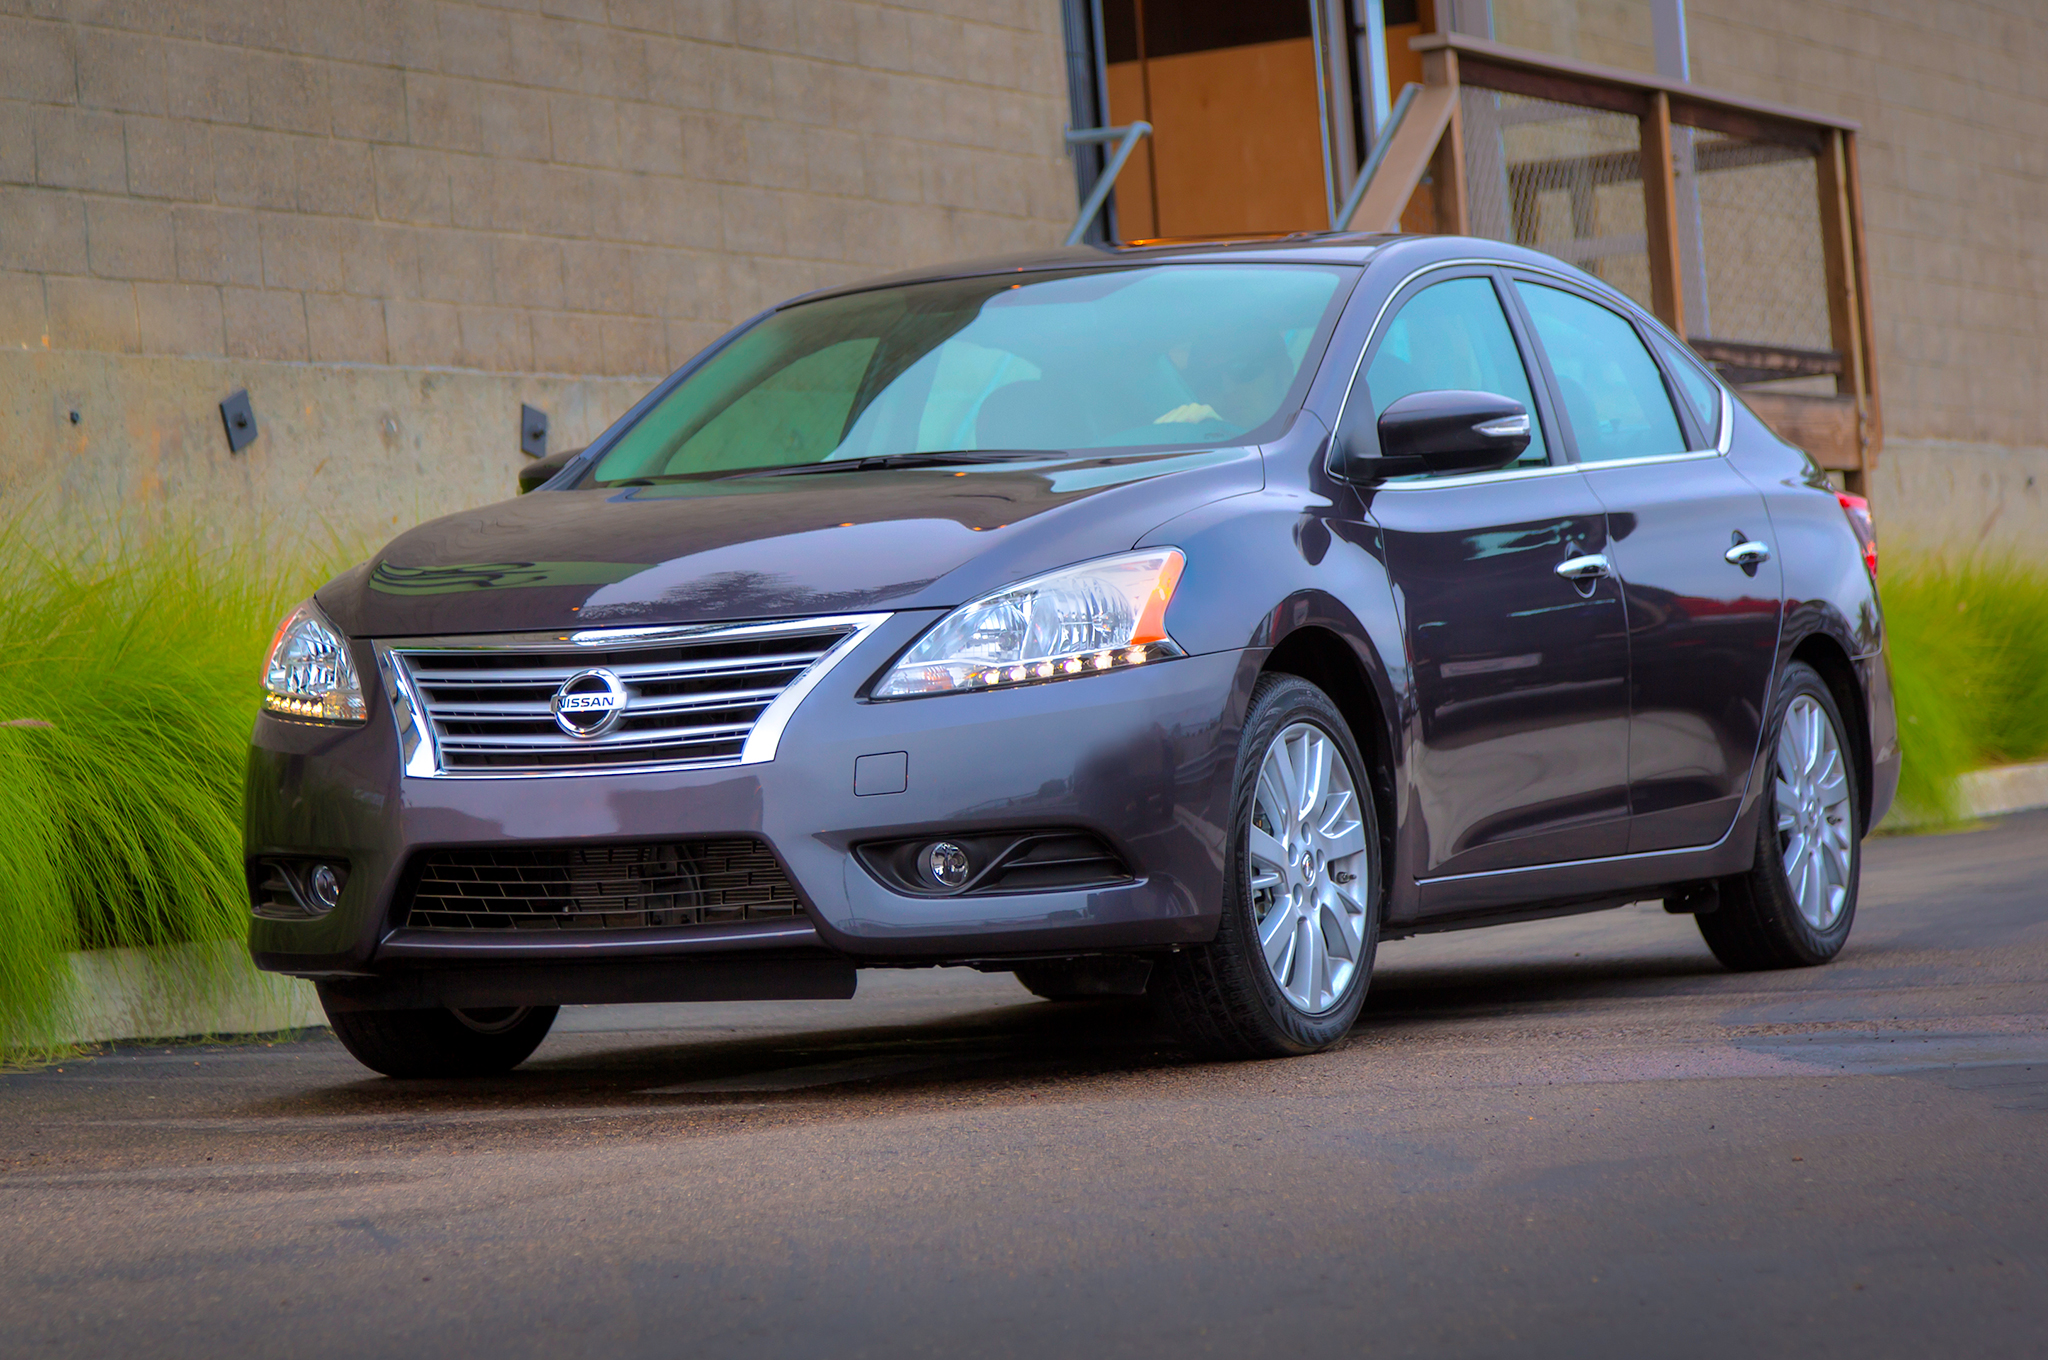 Updated 2014 Nissan Sentra Gets $100-$200 Price Bumps - Motor Trend